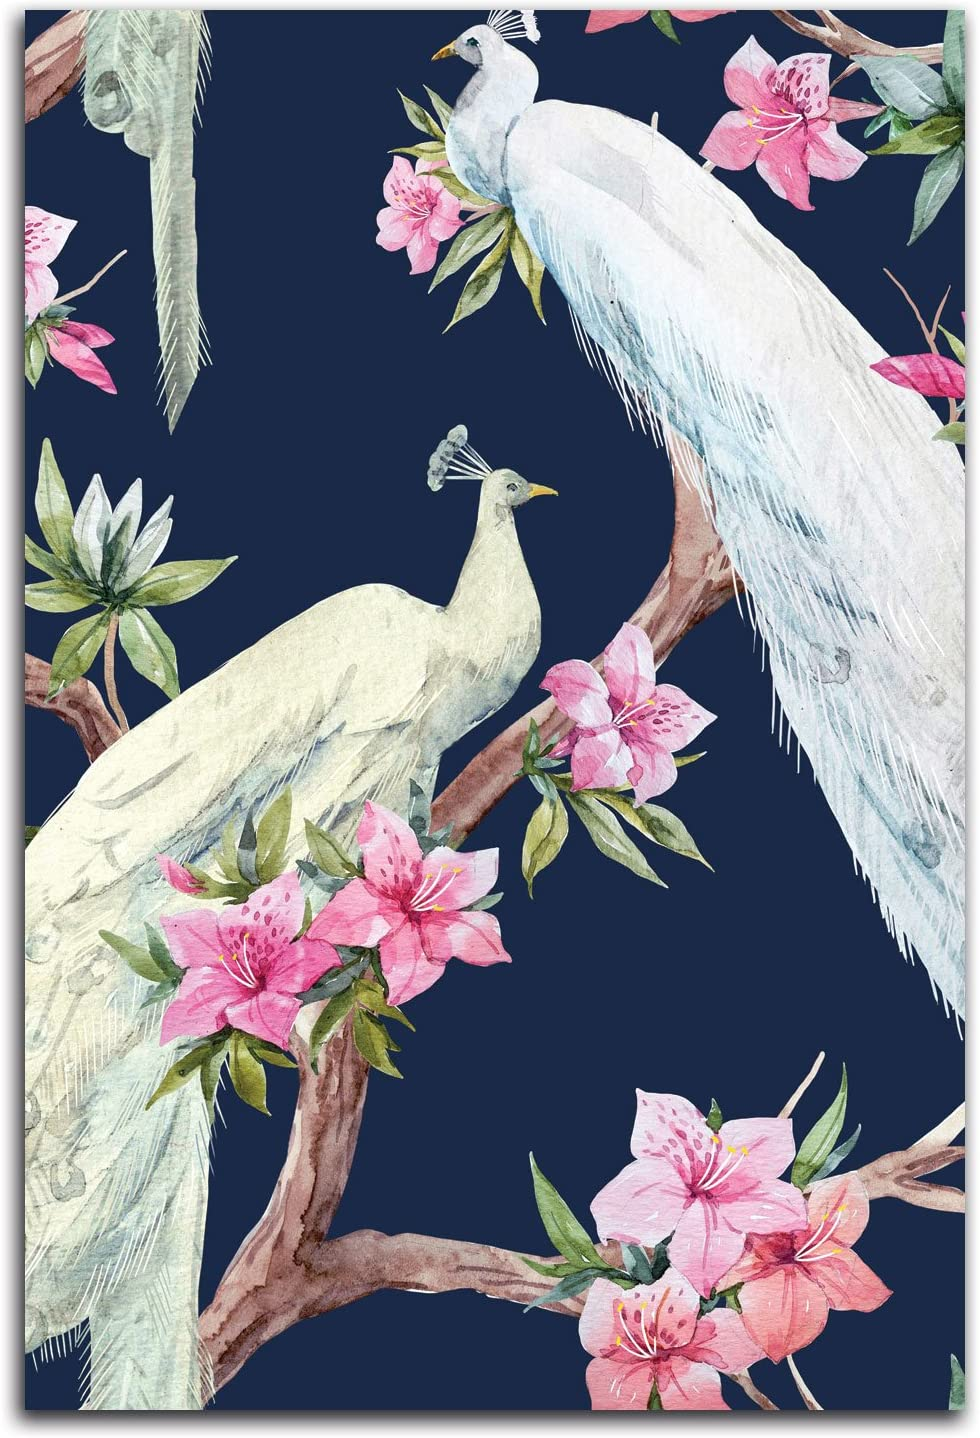 Gango Home Decor Vertical Paradis Birds II by Incado (Printed on Paper); One 12x18in Unframed Paper Poster